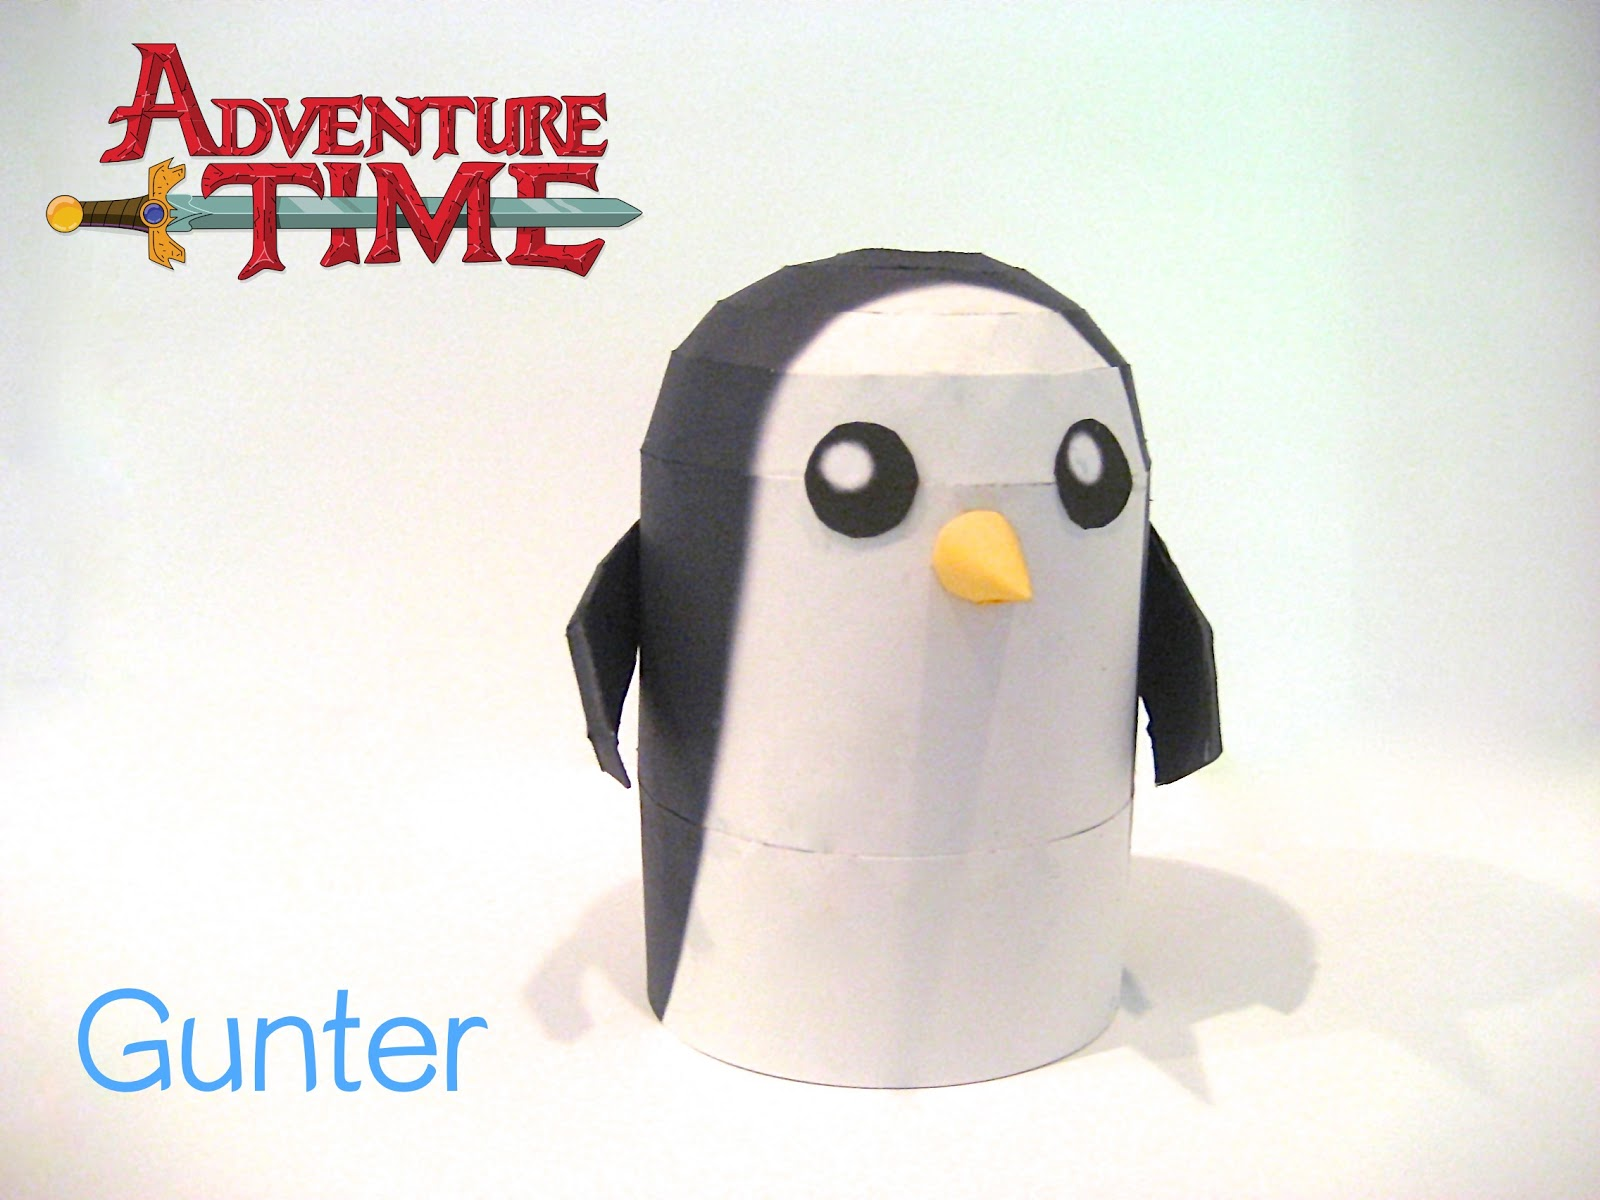 Adventure Time Gunter Papercraft